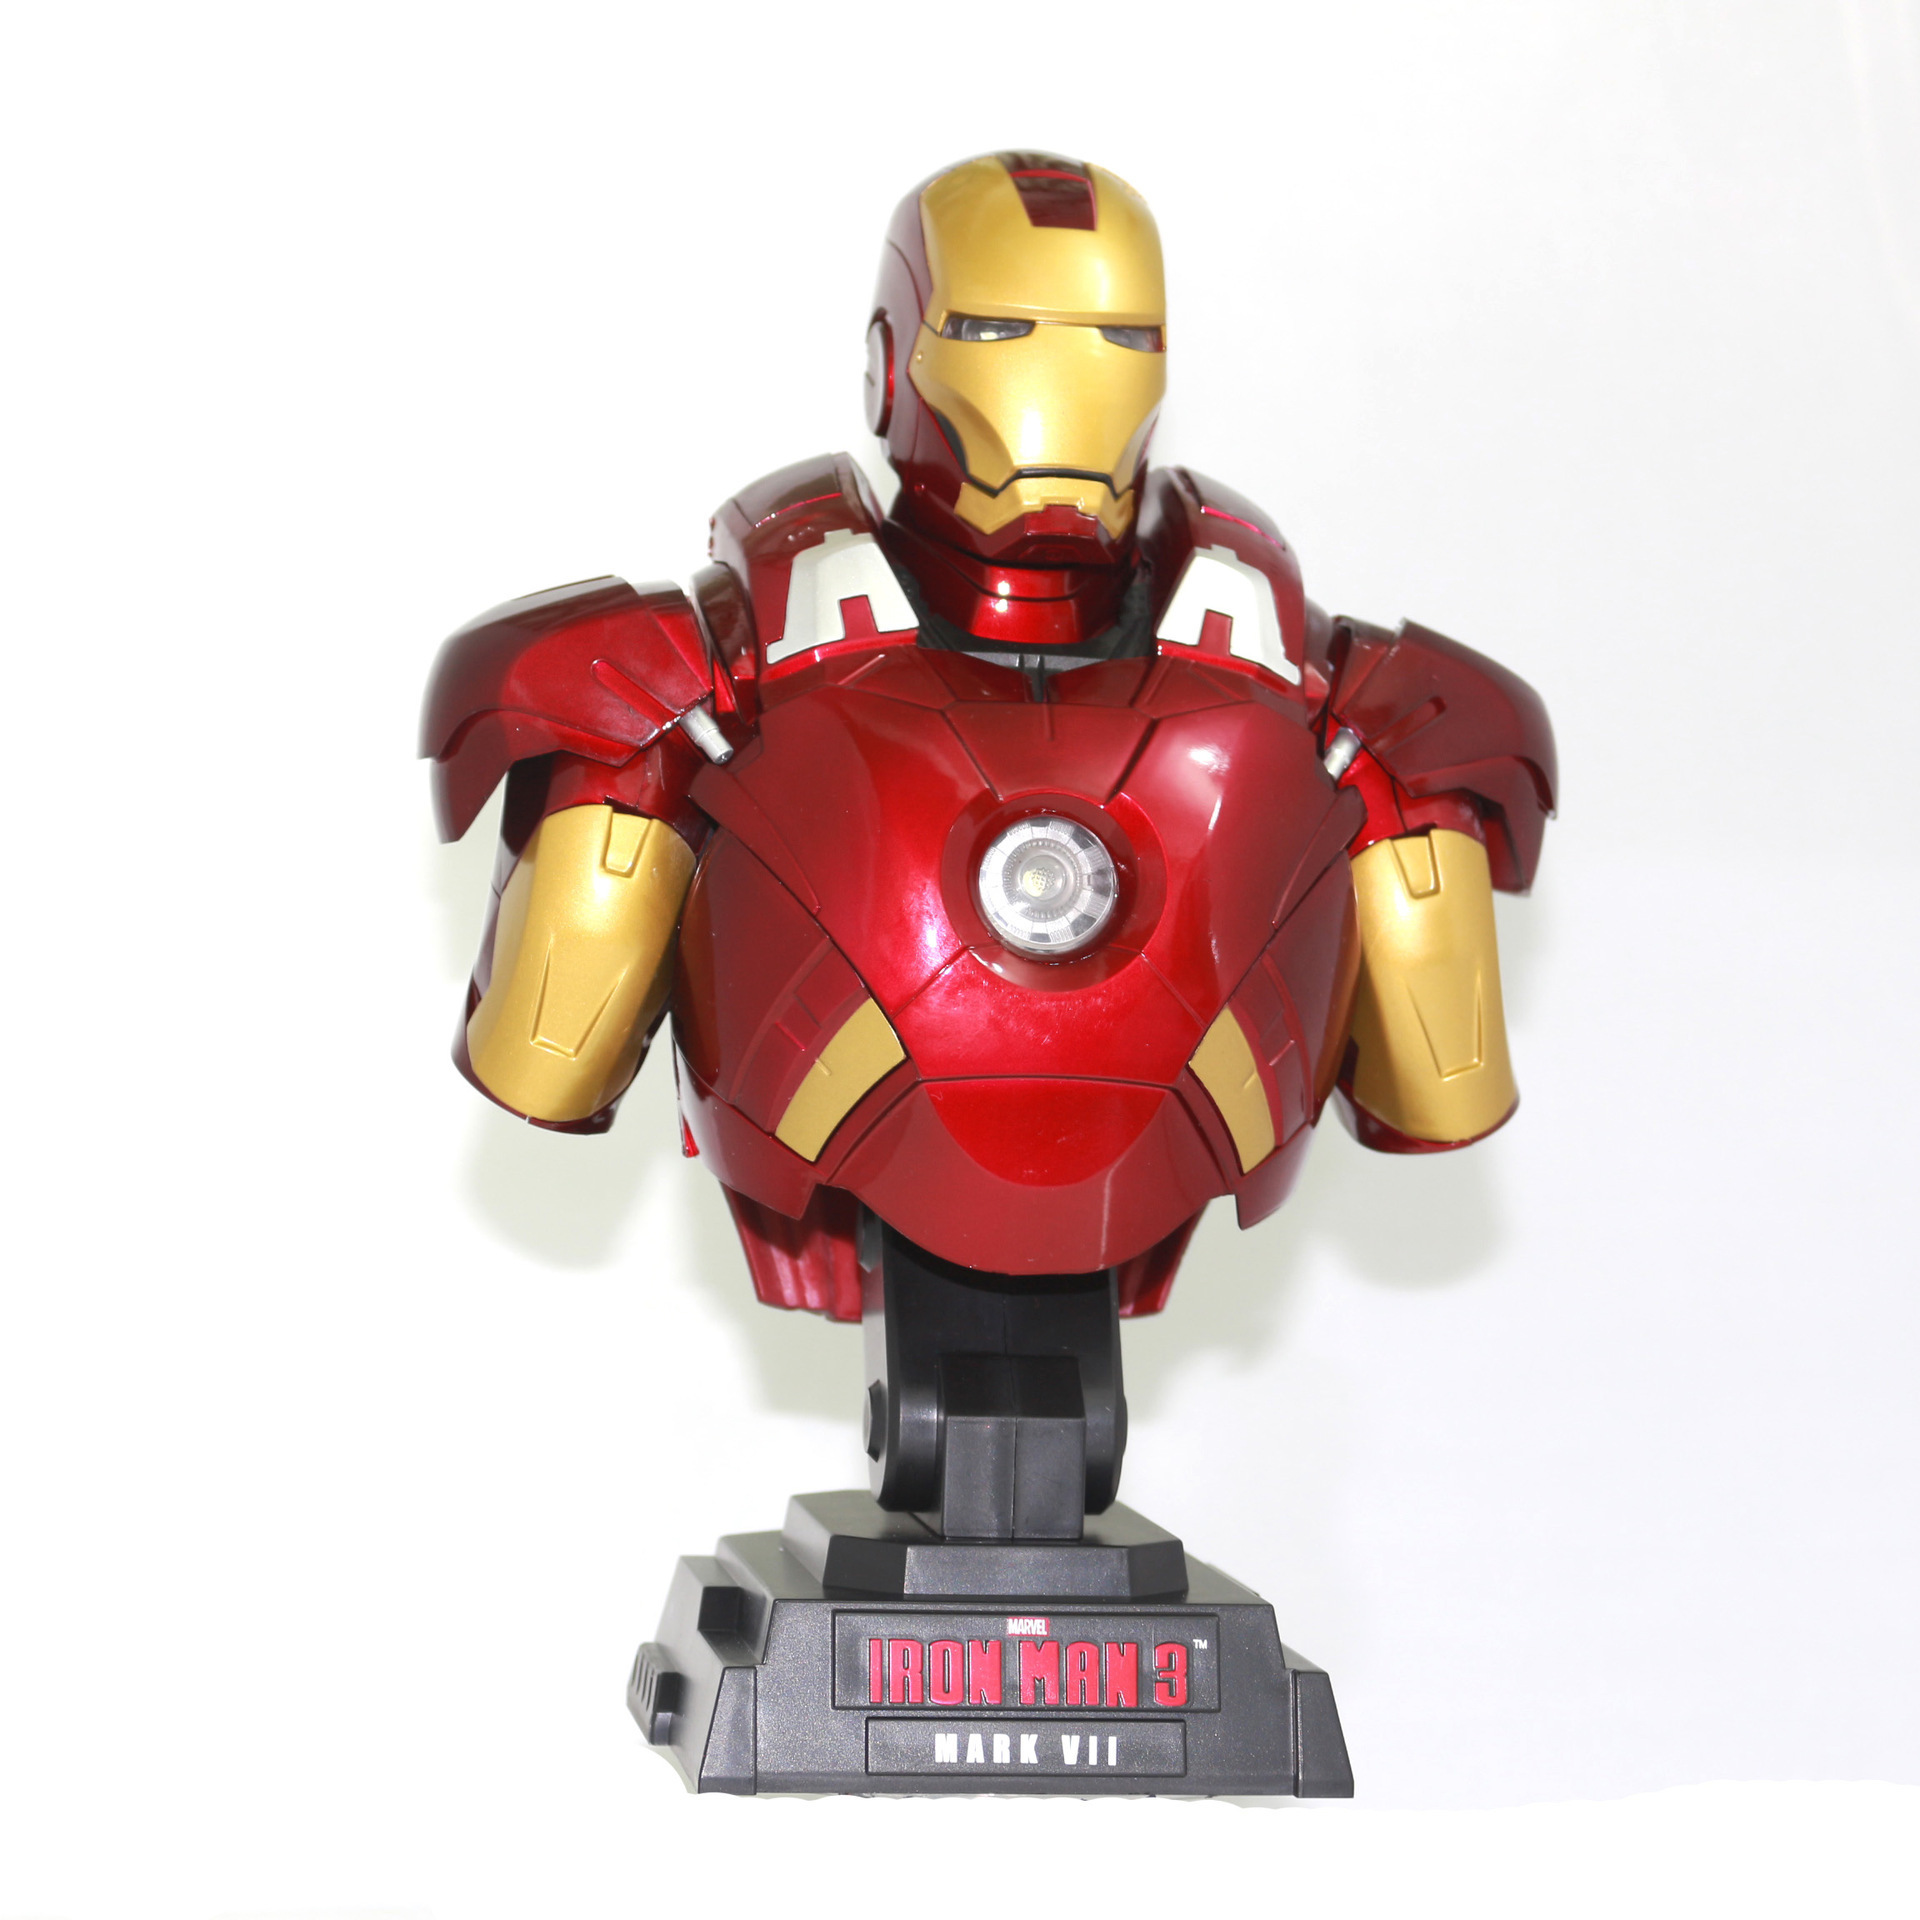 XINDUPLAN Marvel Shield Anime Avengers Civil War iron Man ironman Bust MK7 Light 1/4 Action Figure Toys 23cm Collect Model 0385 protective outdoor war game military skull half face shield mask black